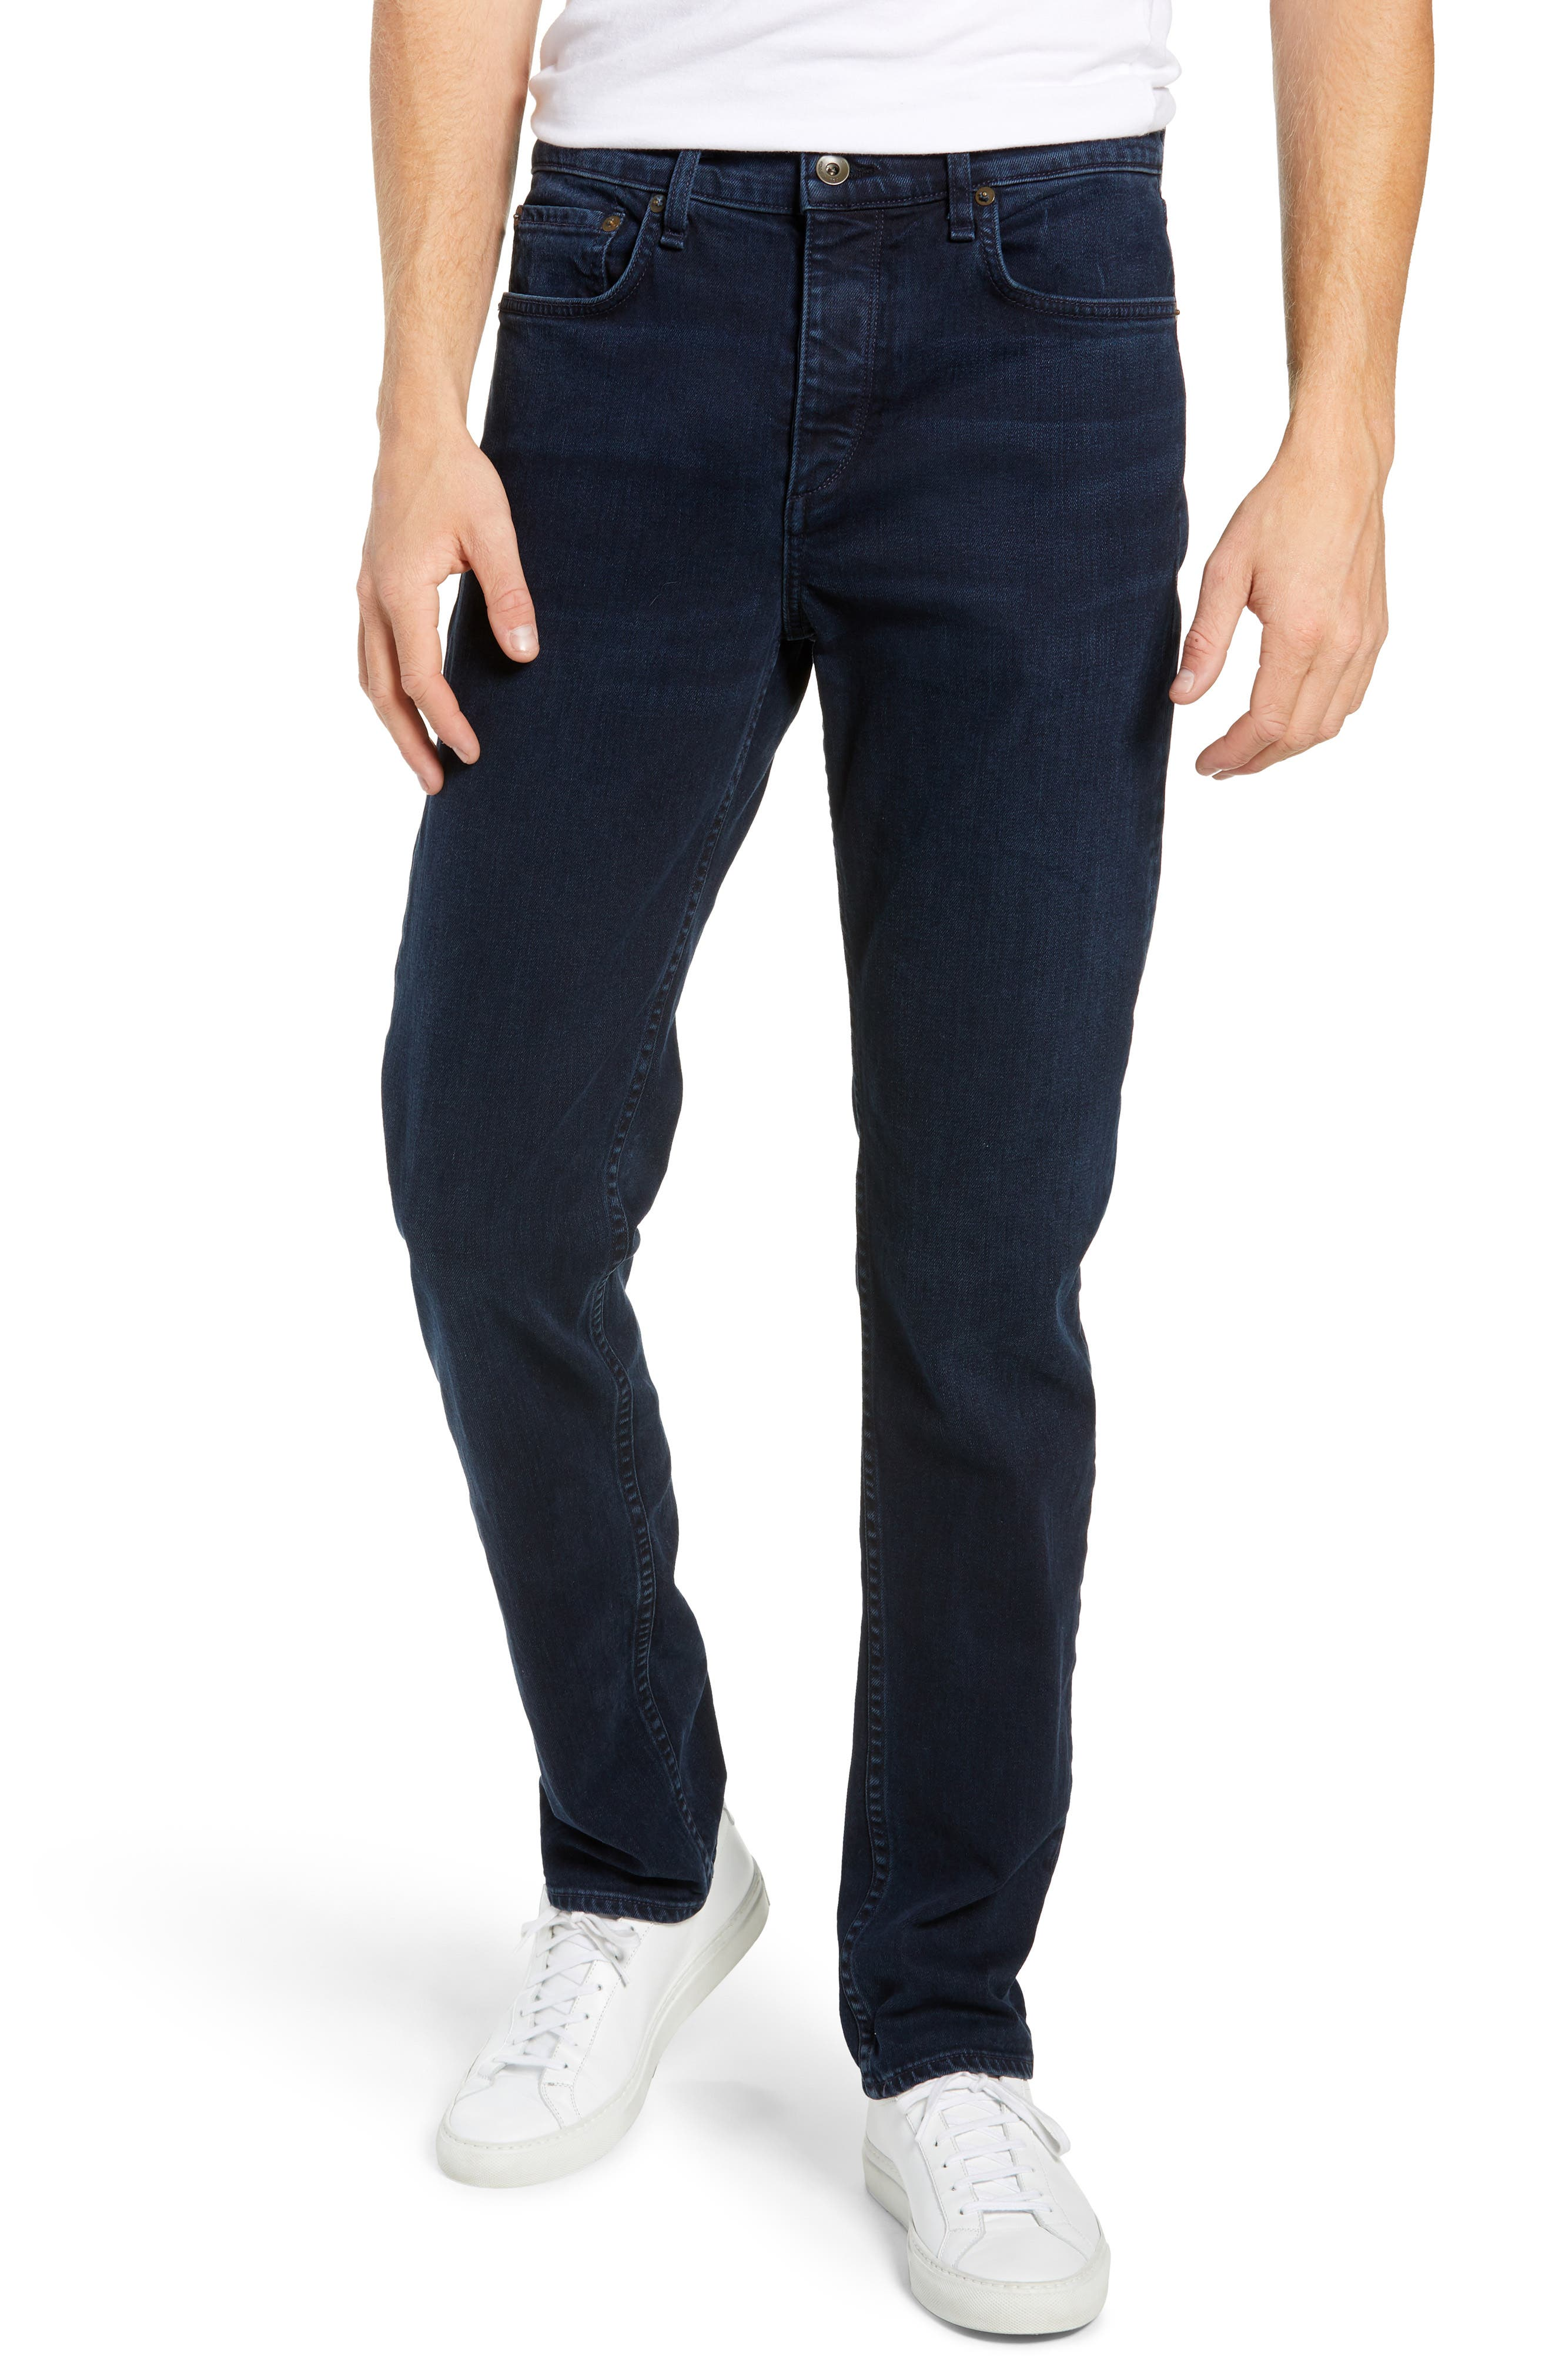 Fit 3 Slim Straight Leg Jeans,                             Main thumbnail 1, color,                             BAYVIEW